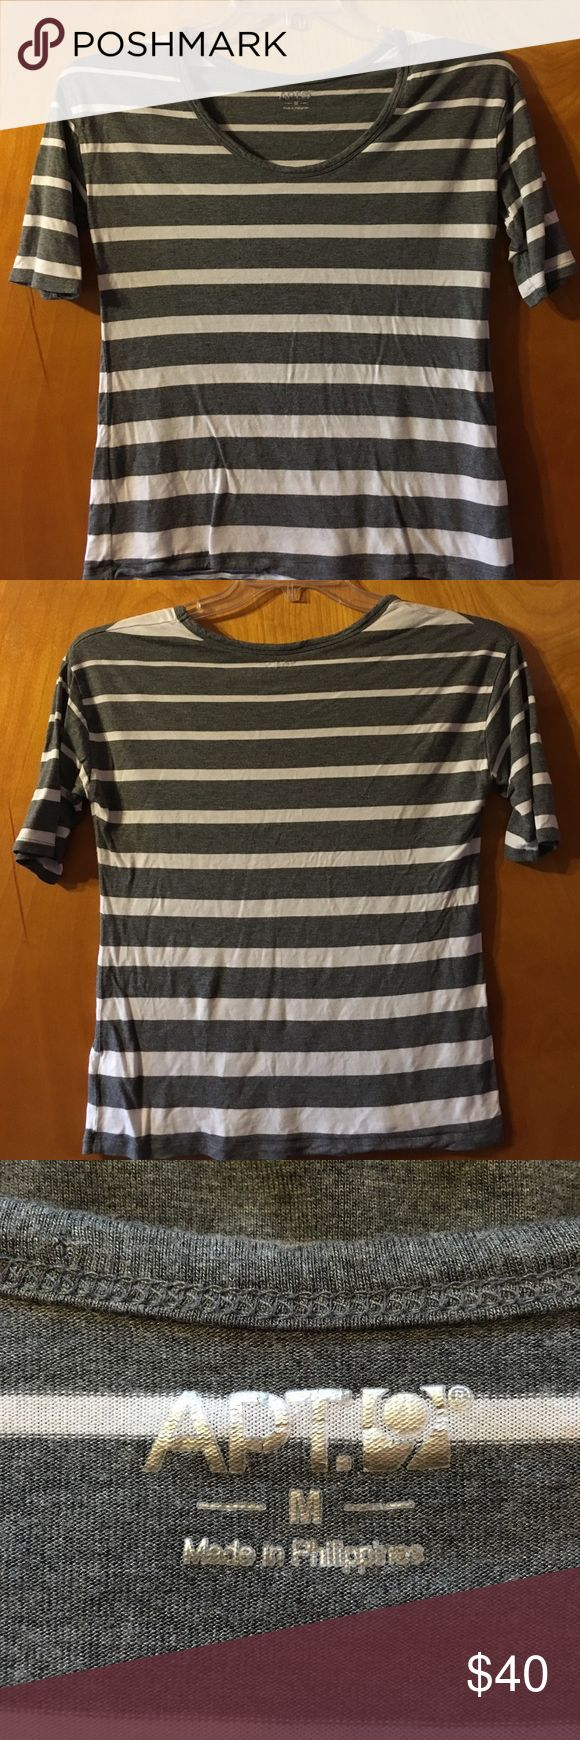 EUC Apt 9 Rayon Short Sleeve Easy Care Tee Shirt NWOT Apt Apartment 9 ladies medium short sleeve 100% rayon gray and white striped T-shirt. Super easy to care for was washed and hung in closet. Never worn. No trades modeling or comment negotiations thank you Apt. 9 Tops Tees - Short Sleeve